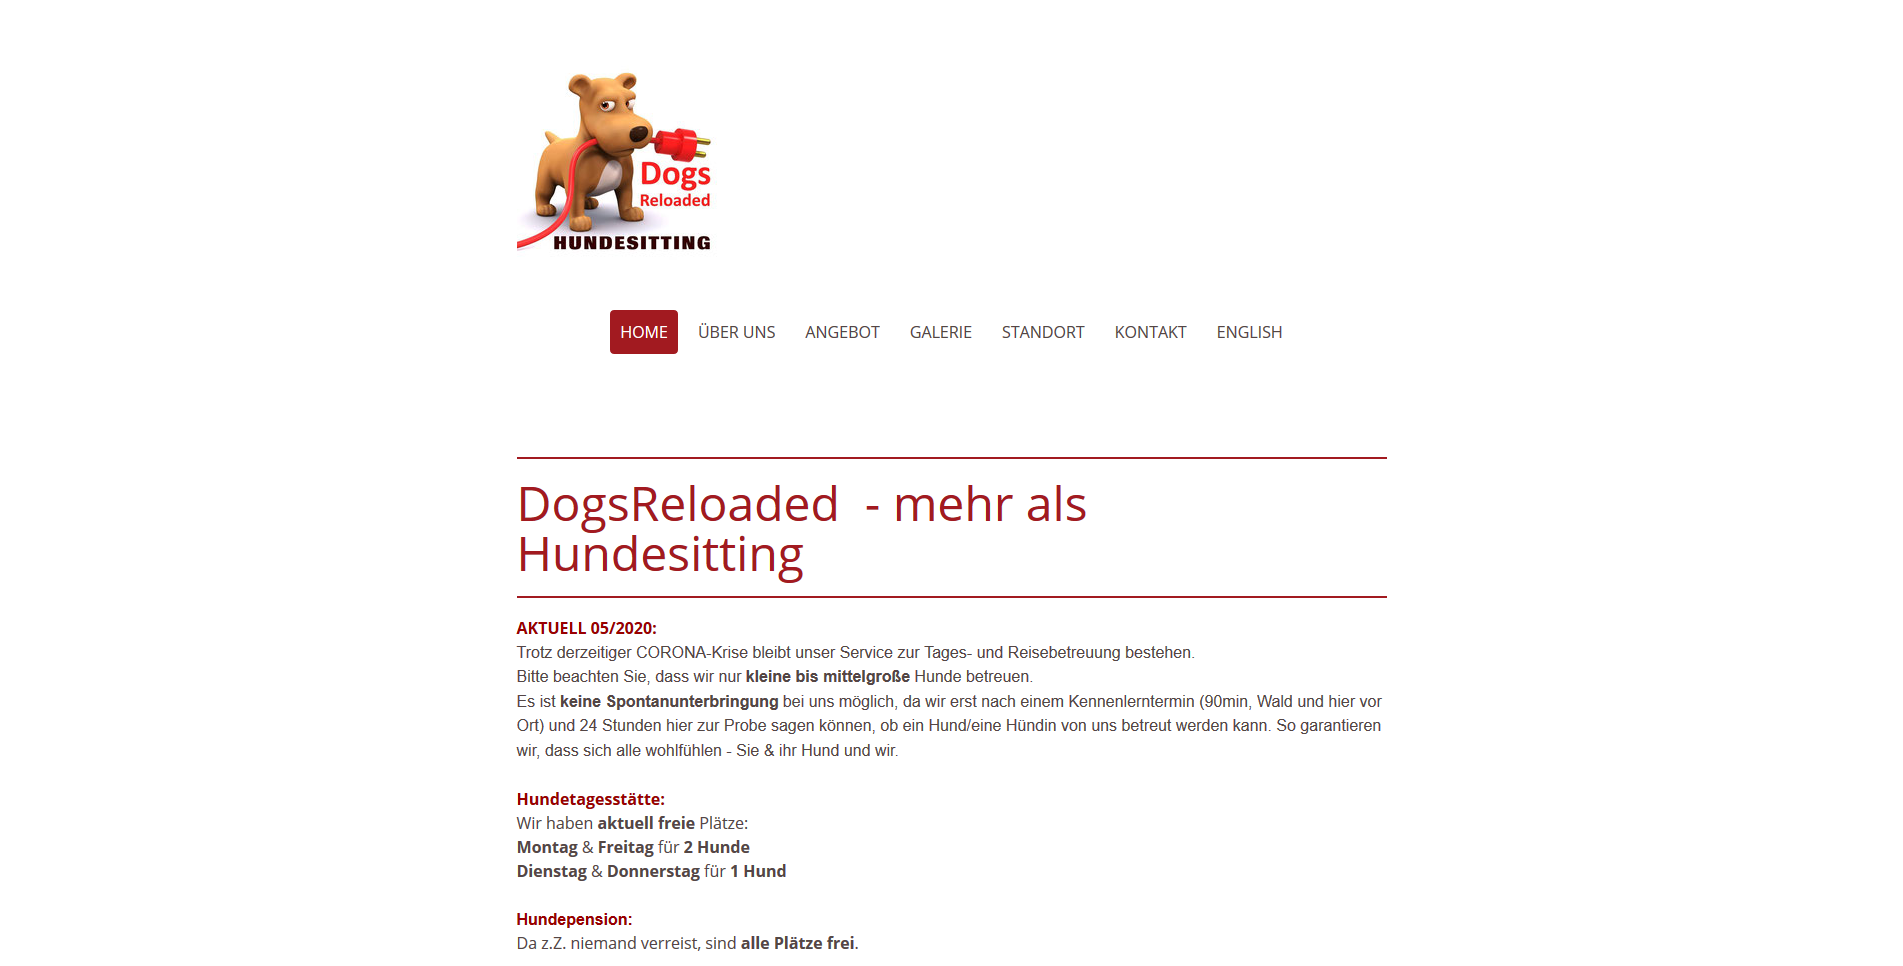 DogsReloaded Hundesitting